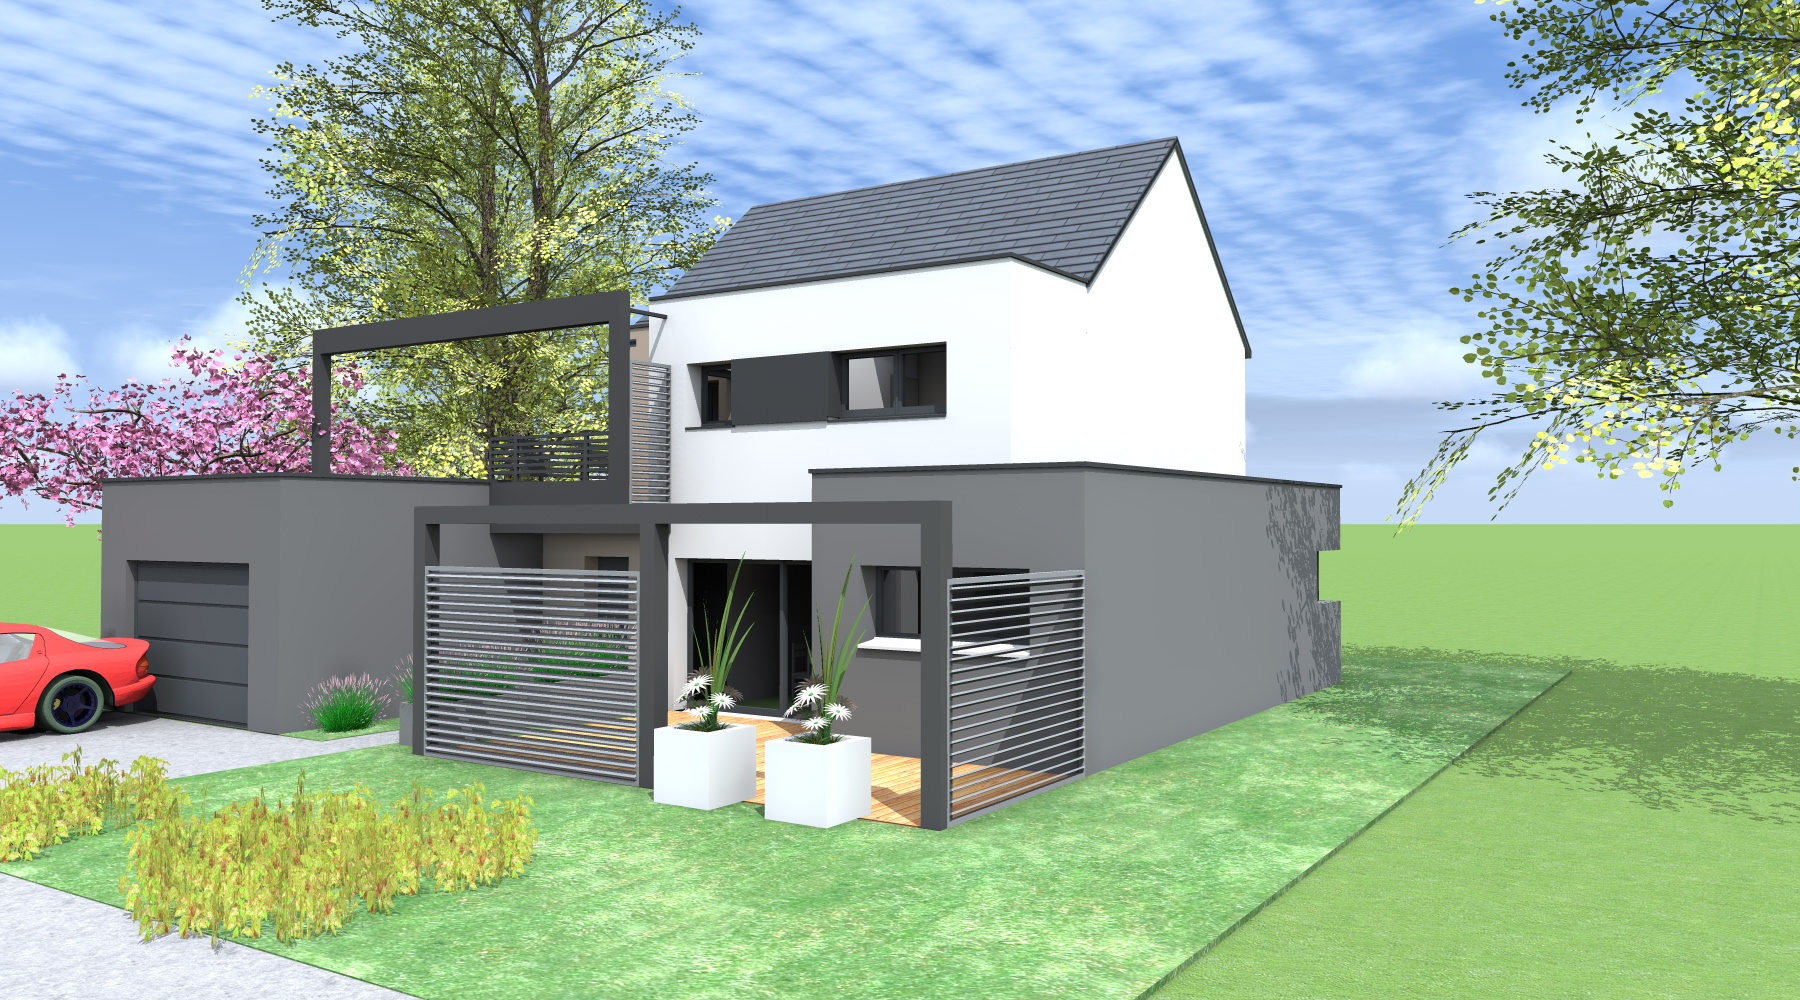 Maison d 39 architecte contemporaine st gr goire 35 for Maison neuve projet